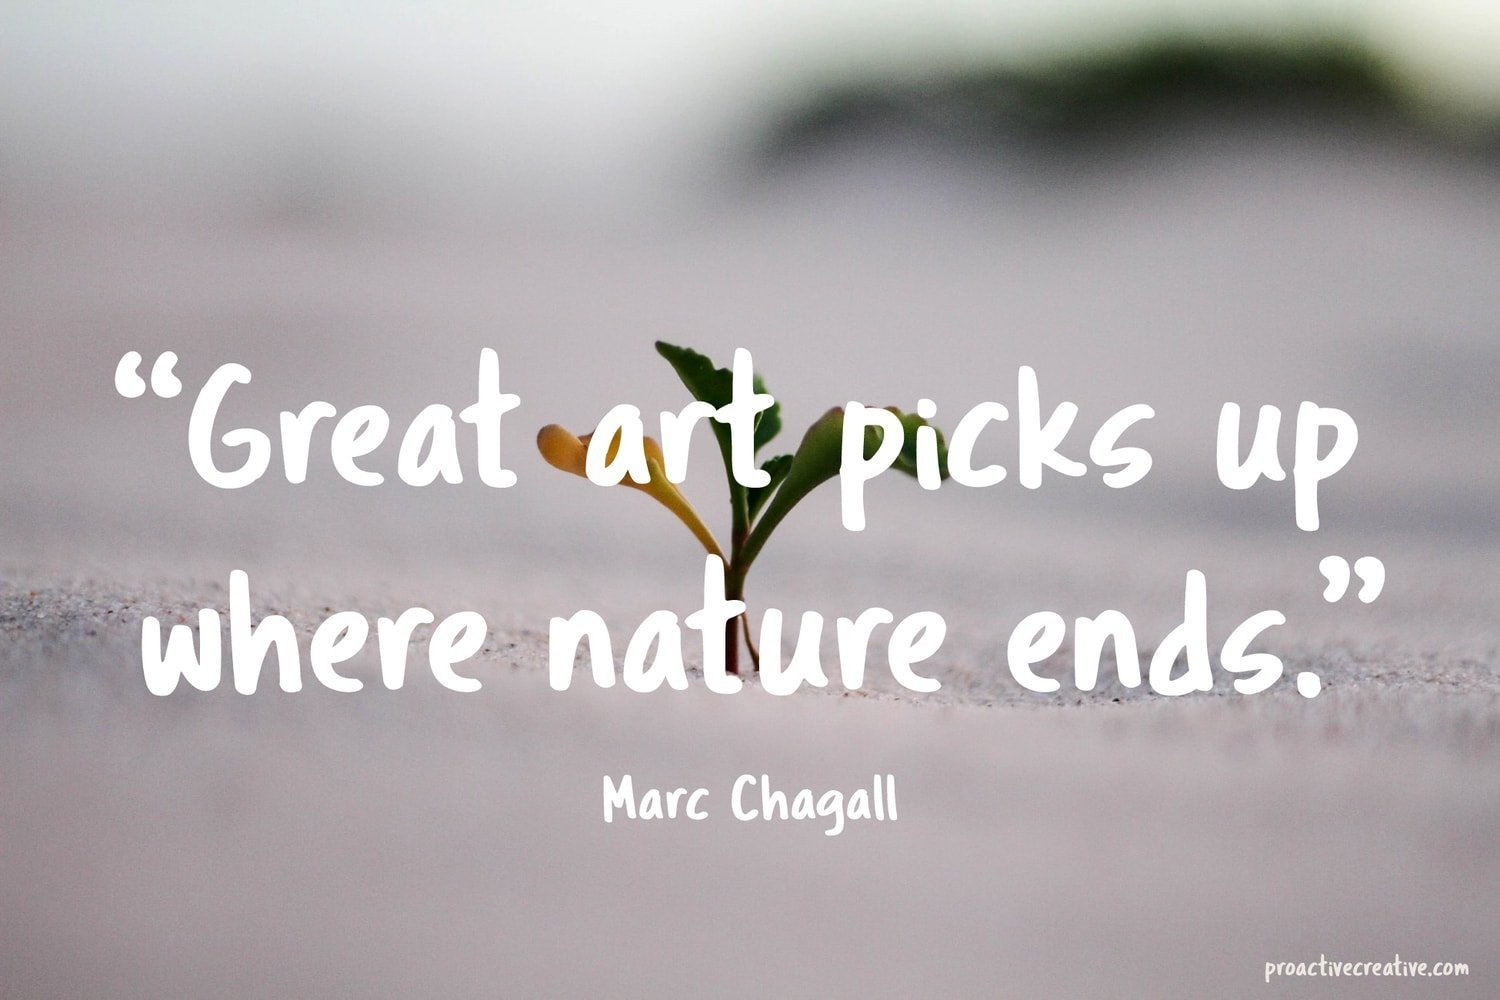 Art quotes - Marc Chagall